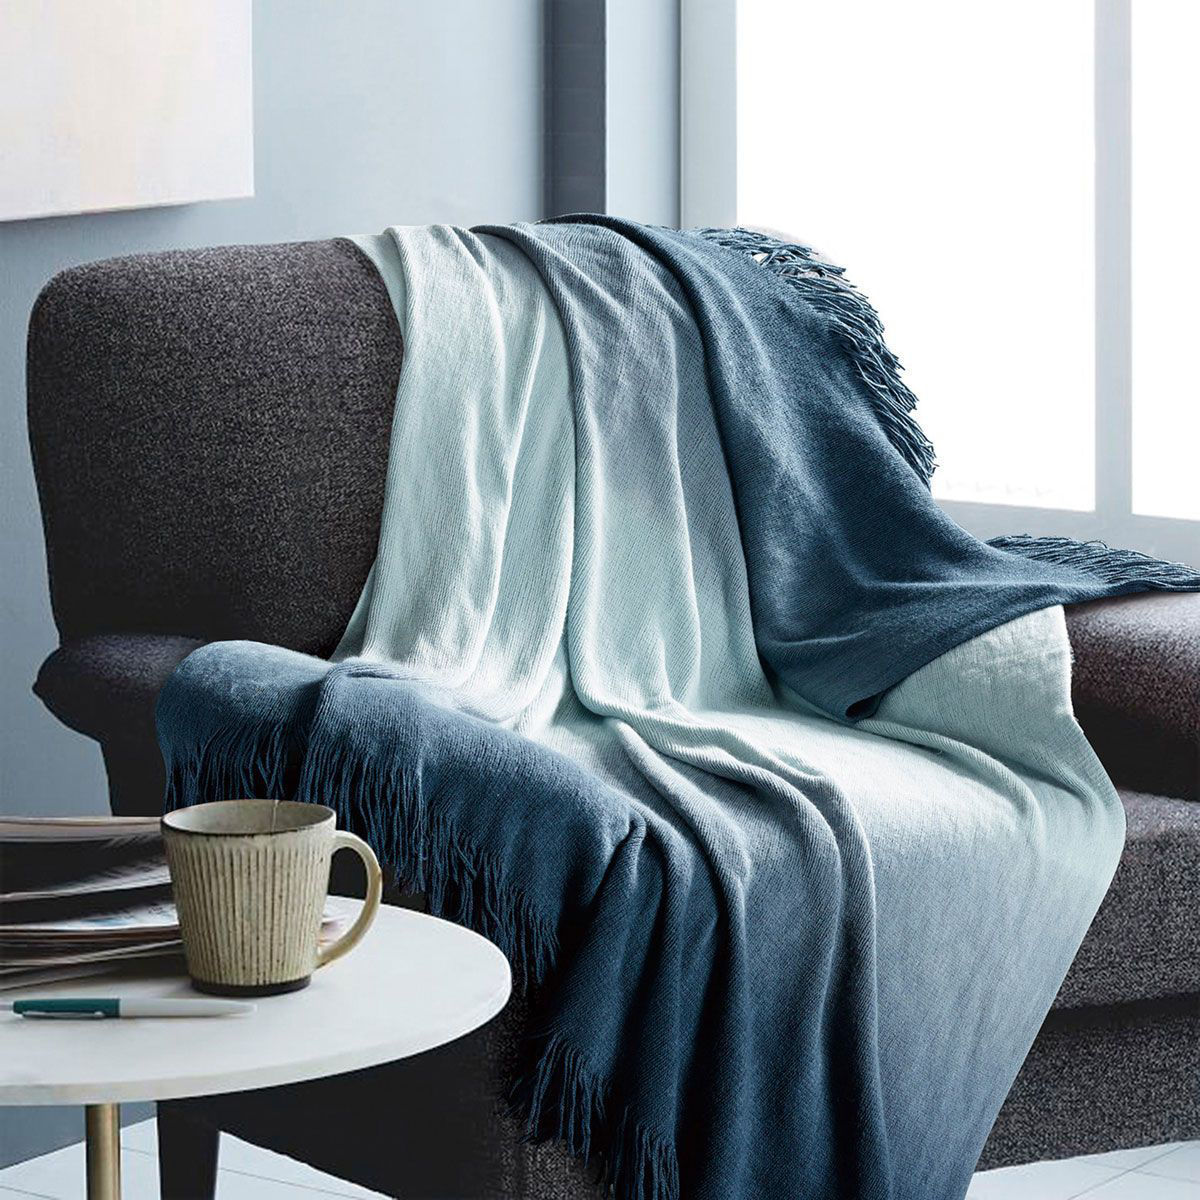 Picture of OMBRE BLUE THROW BLANKET